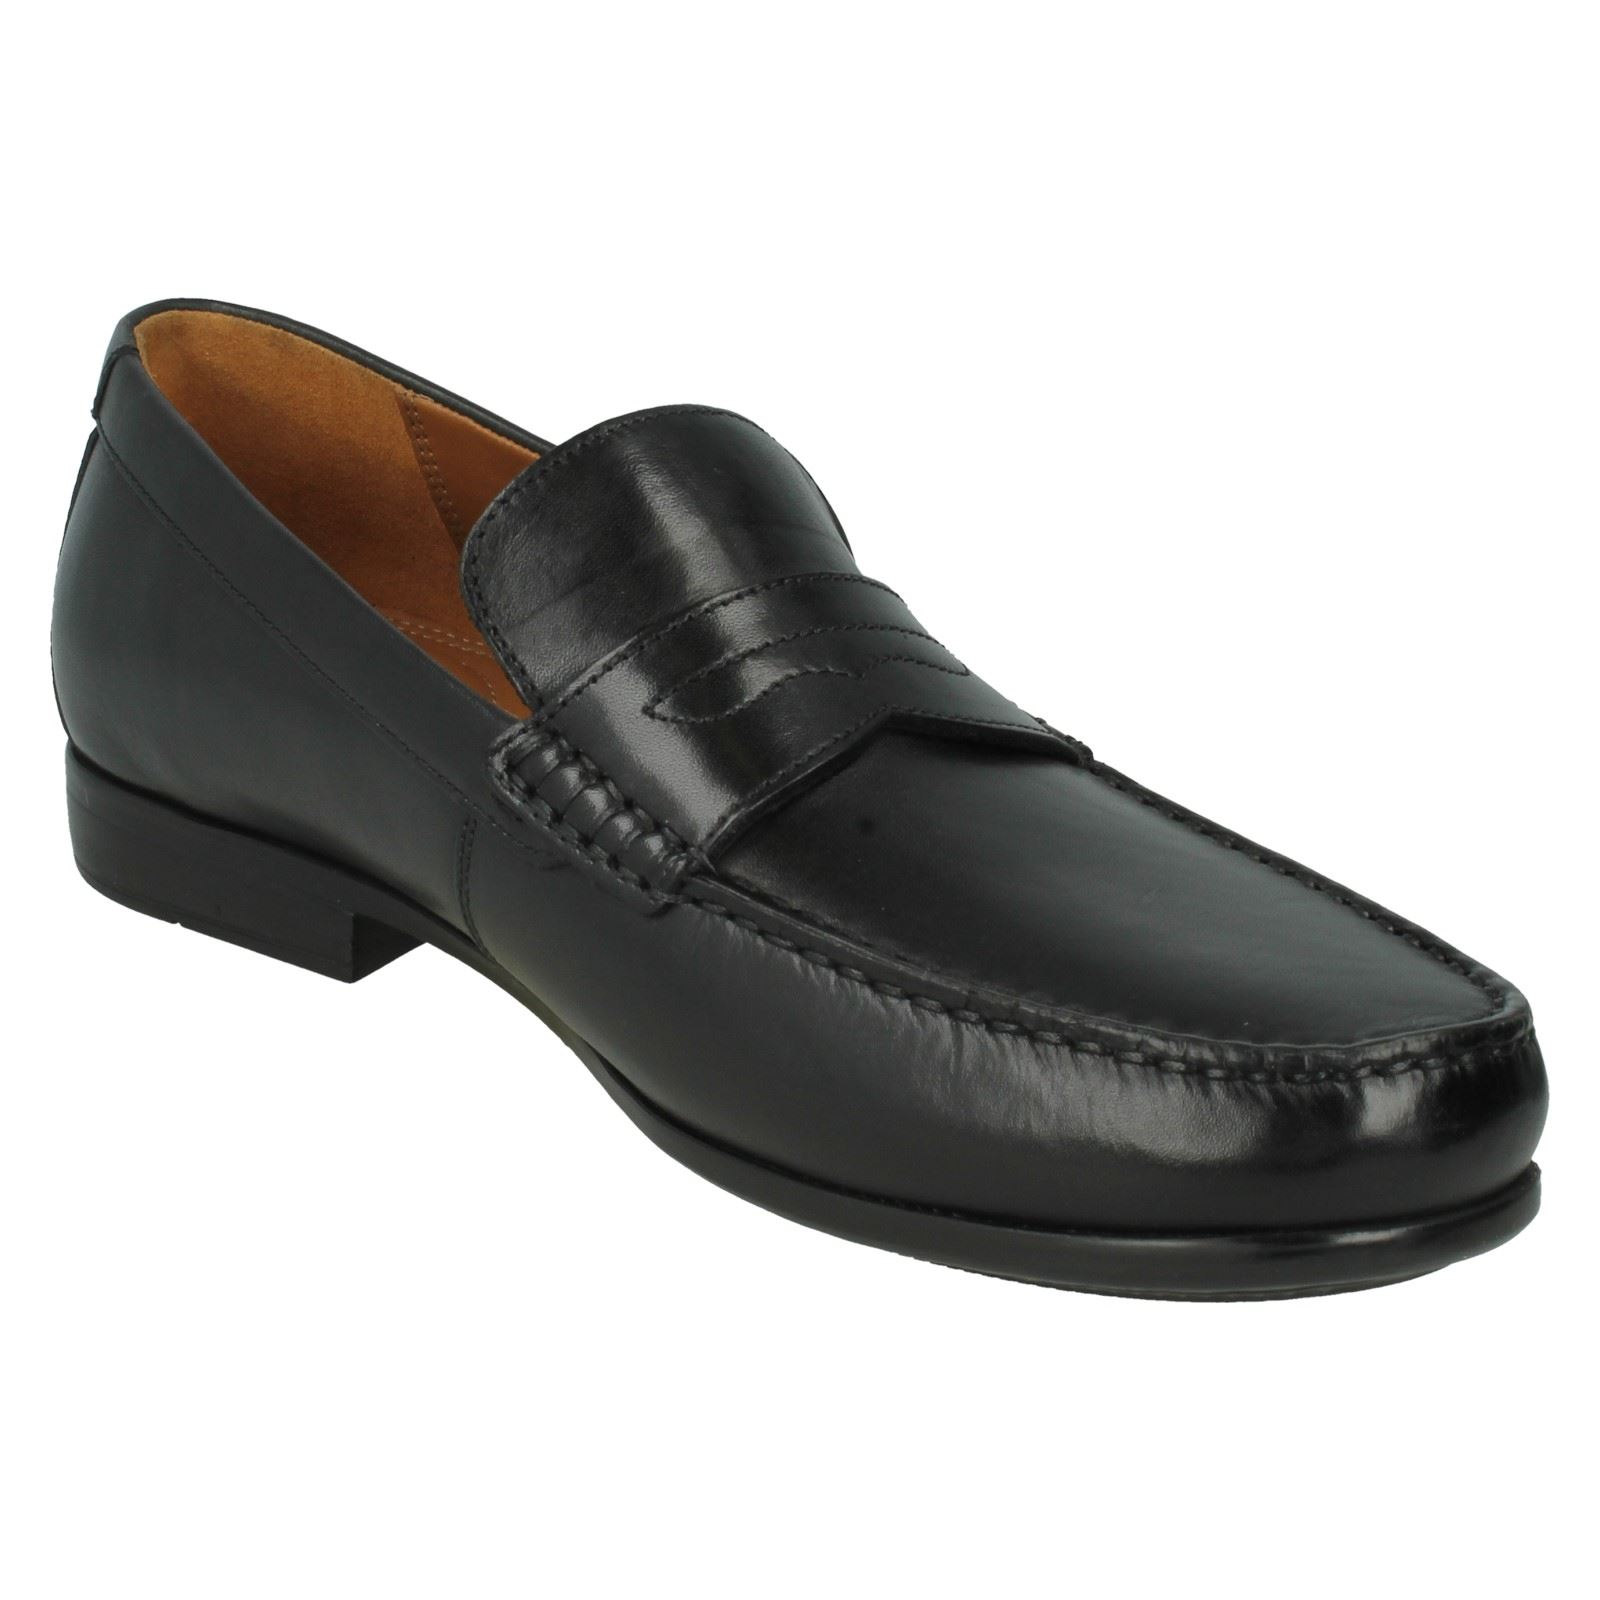 hindu single men in clarks Discover clarks shoes and boots online we have many different styles for men,  women and kids in a variety of size and width fittings.